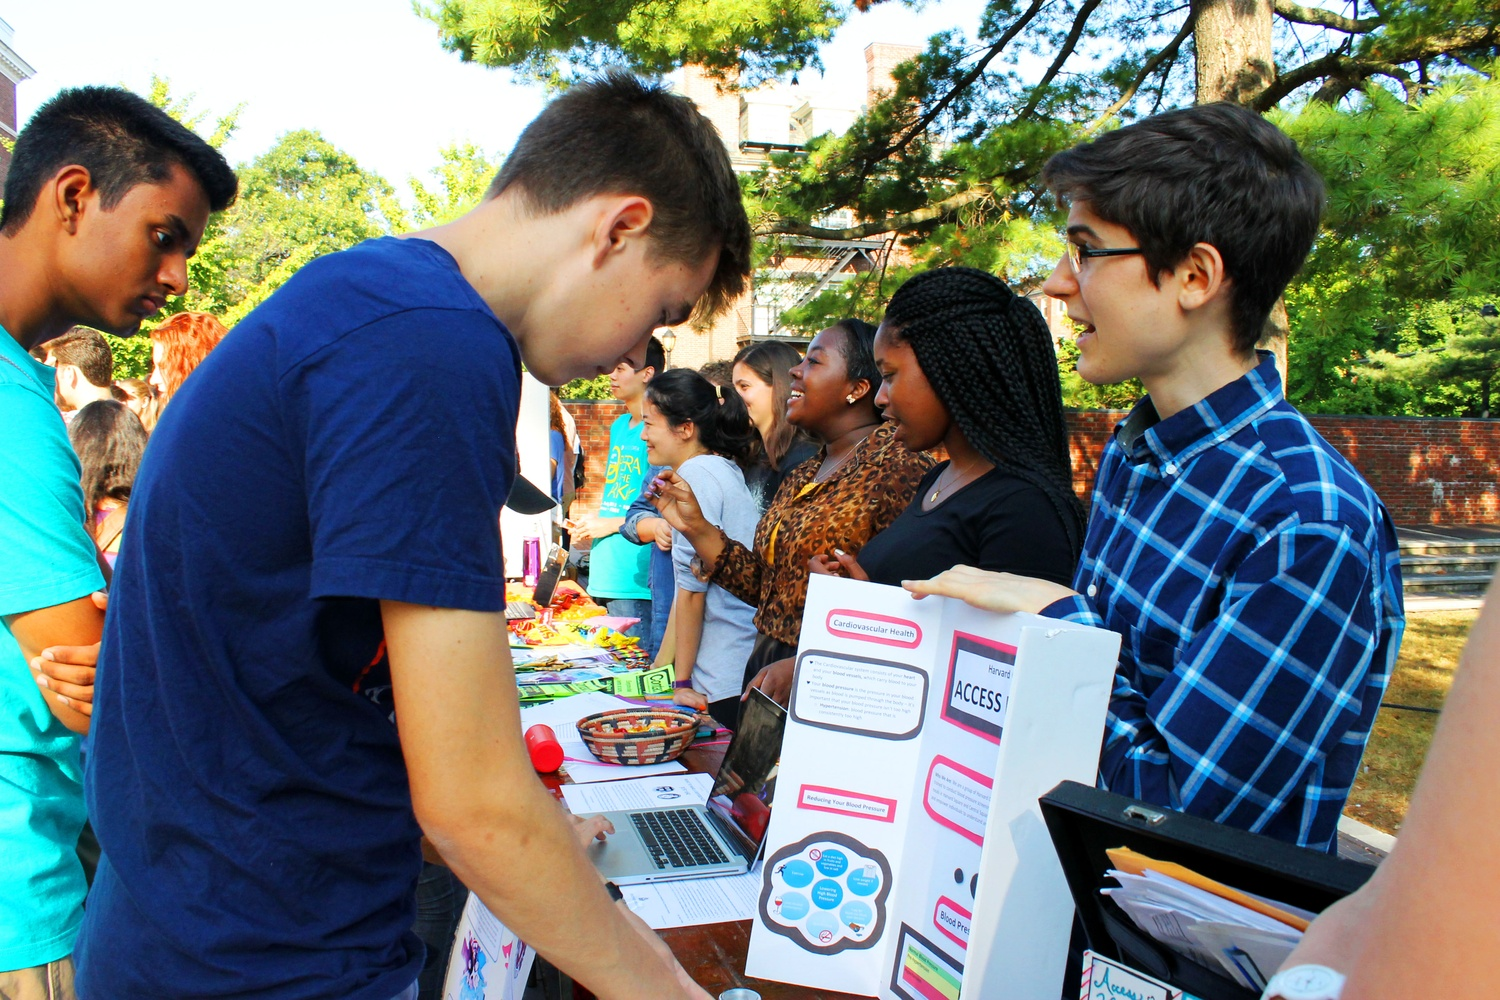 Students talk to representatives and sign up for various clubs on campus on display at the 2015 Activities Fair.